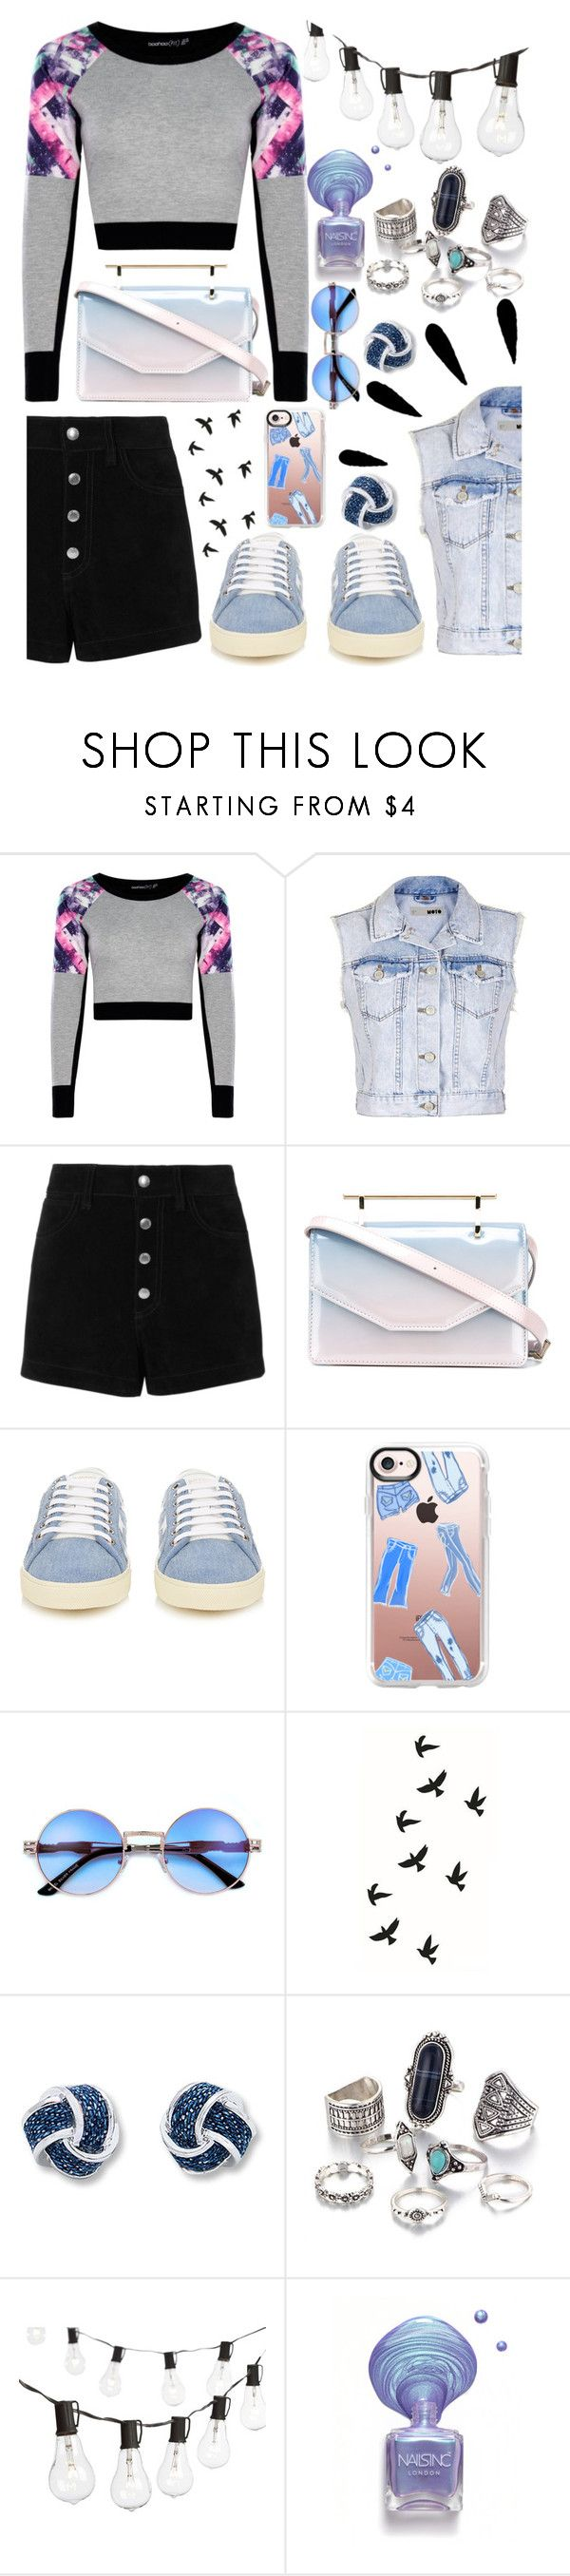 """""""History (Oliva Holt)"""" by superswimmerca ❤ liked on Polyvore featuring Topshop, Old Navy, rag & bone/JEAN, M2Malletier, Yves Saint Laurent, Casetify and Crate and Barrel"""